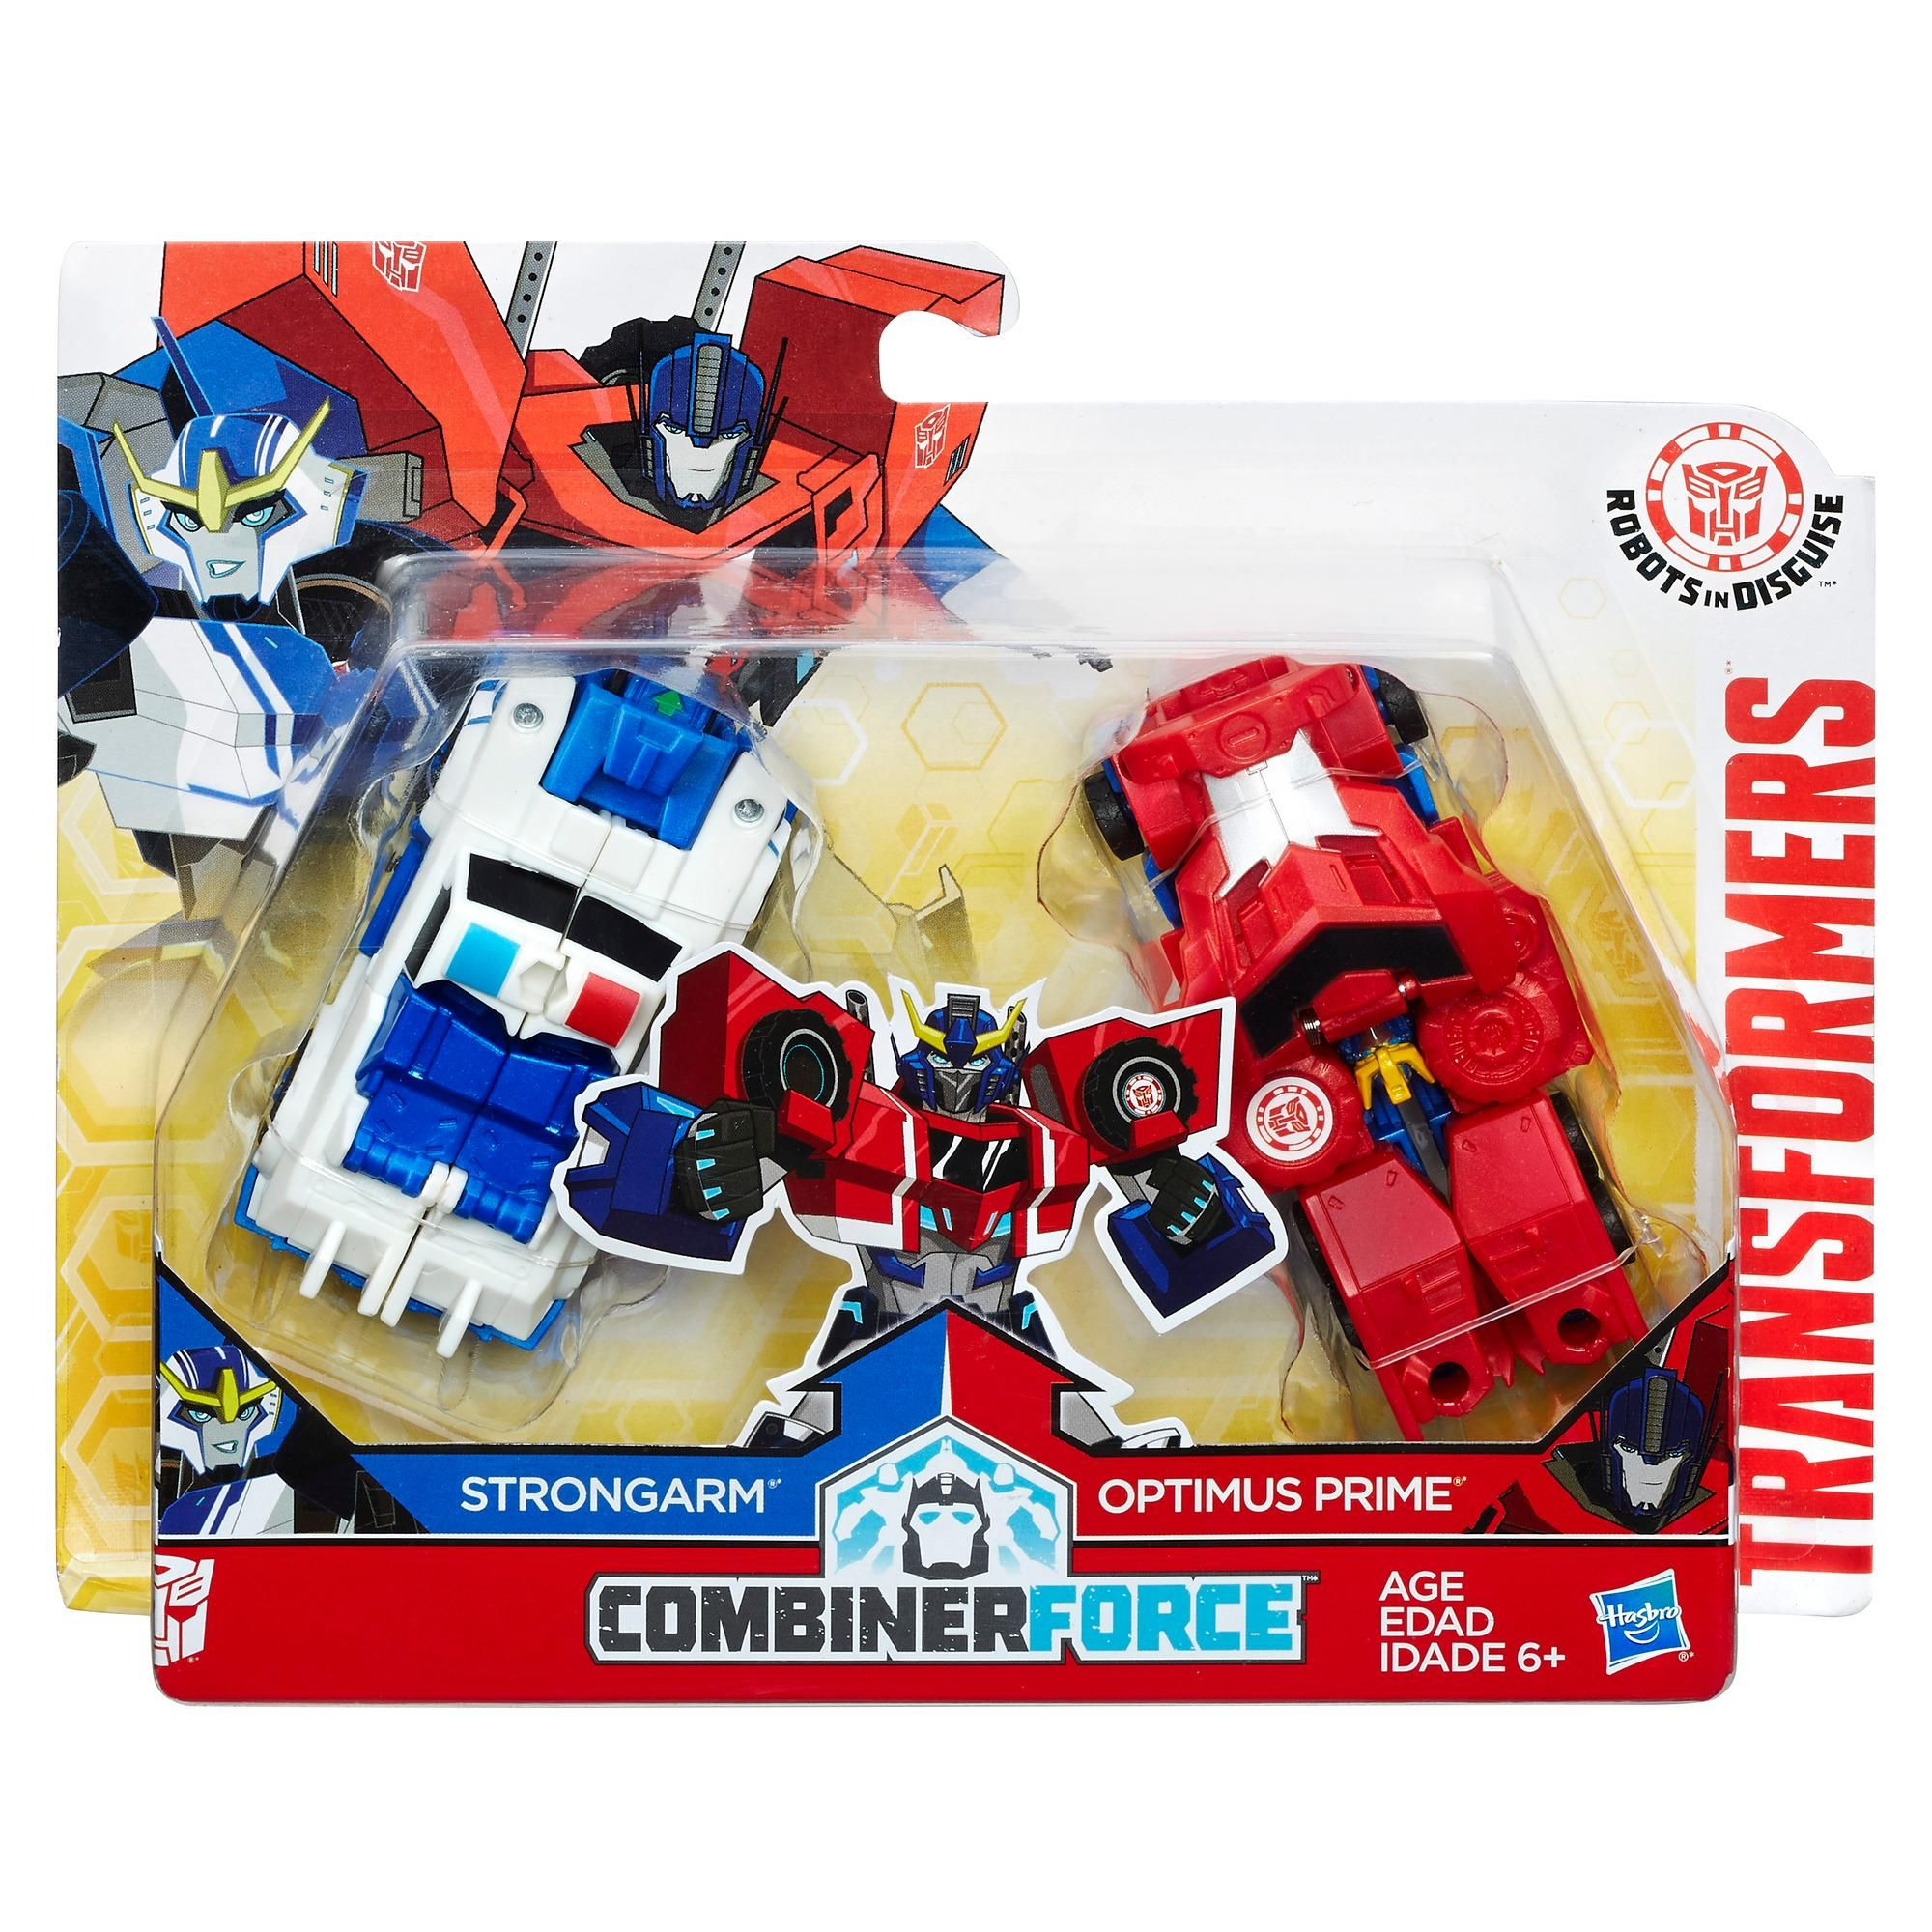 Transformers Robots In Disguise Combiner Force Crash Combiner Primestrong Toy